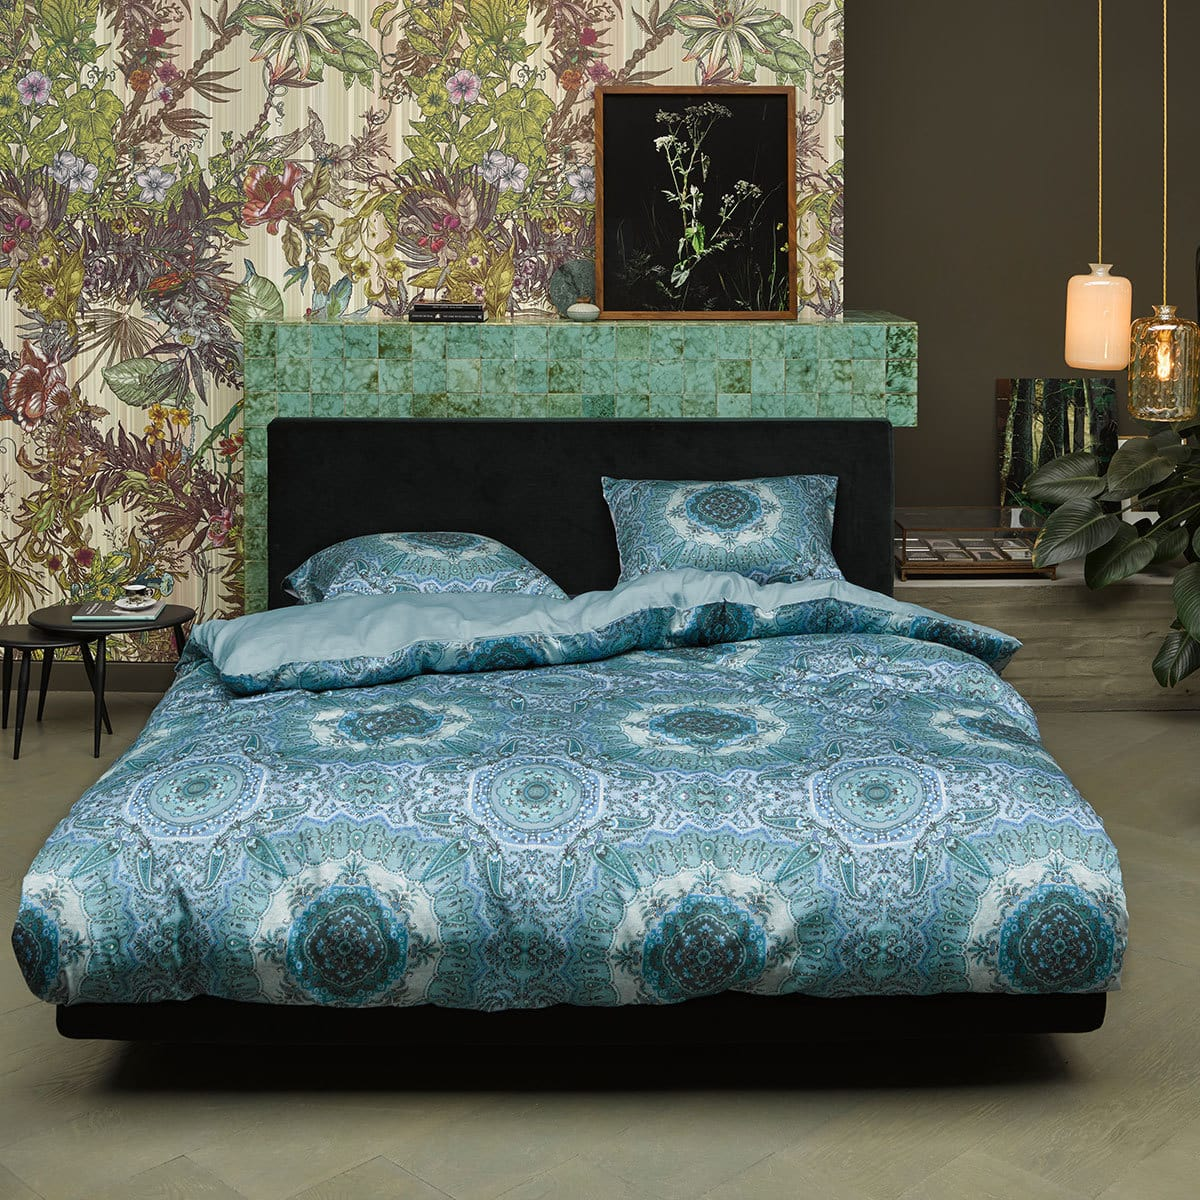 essenza mako satin bettw sche cadiz blue g nstig online kaufen bei bettwaren shop. Black Bedroom Furniture Sets. Home Design Ideas